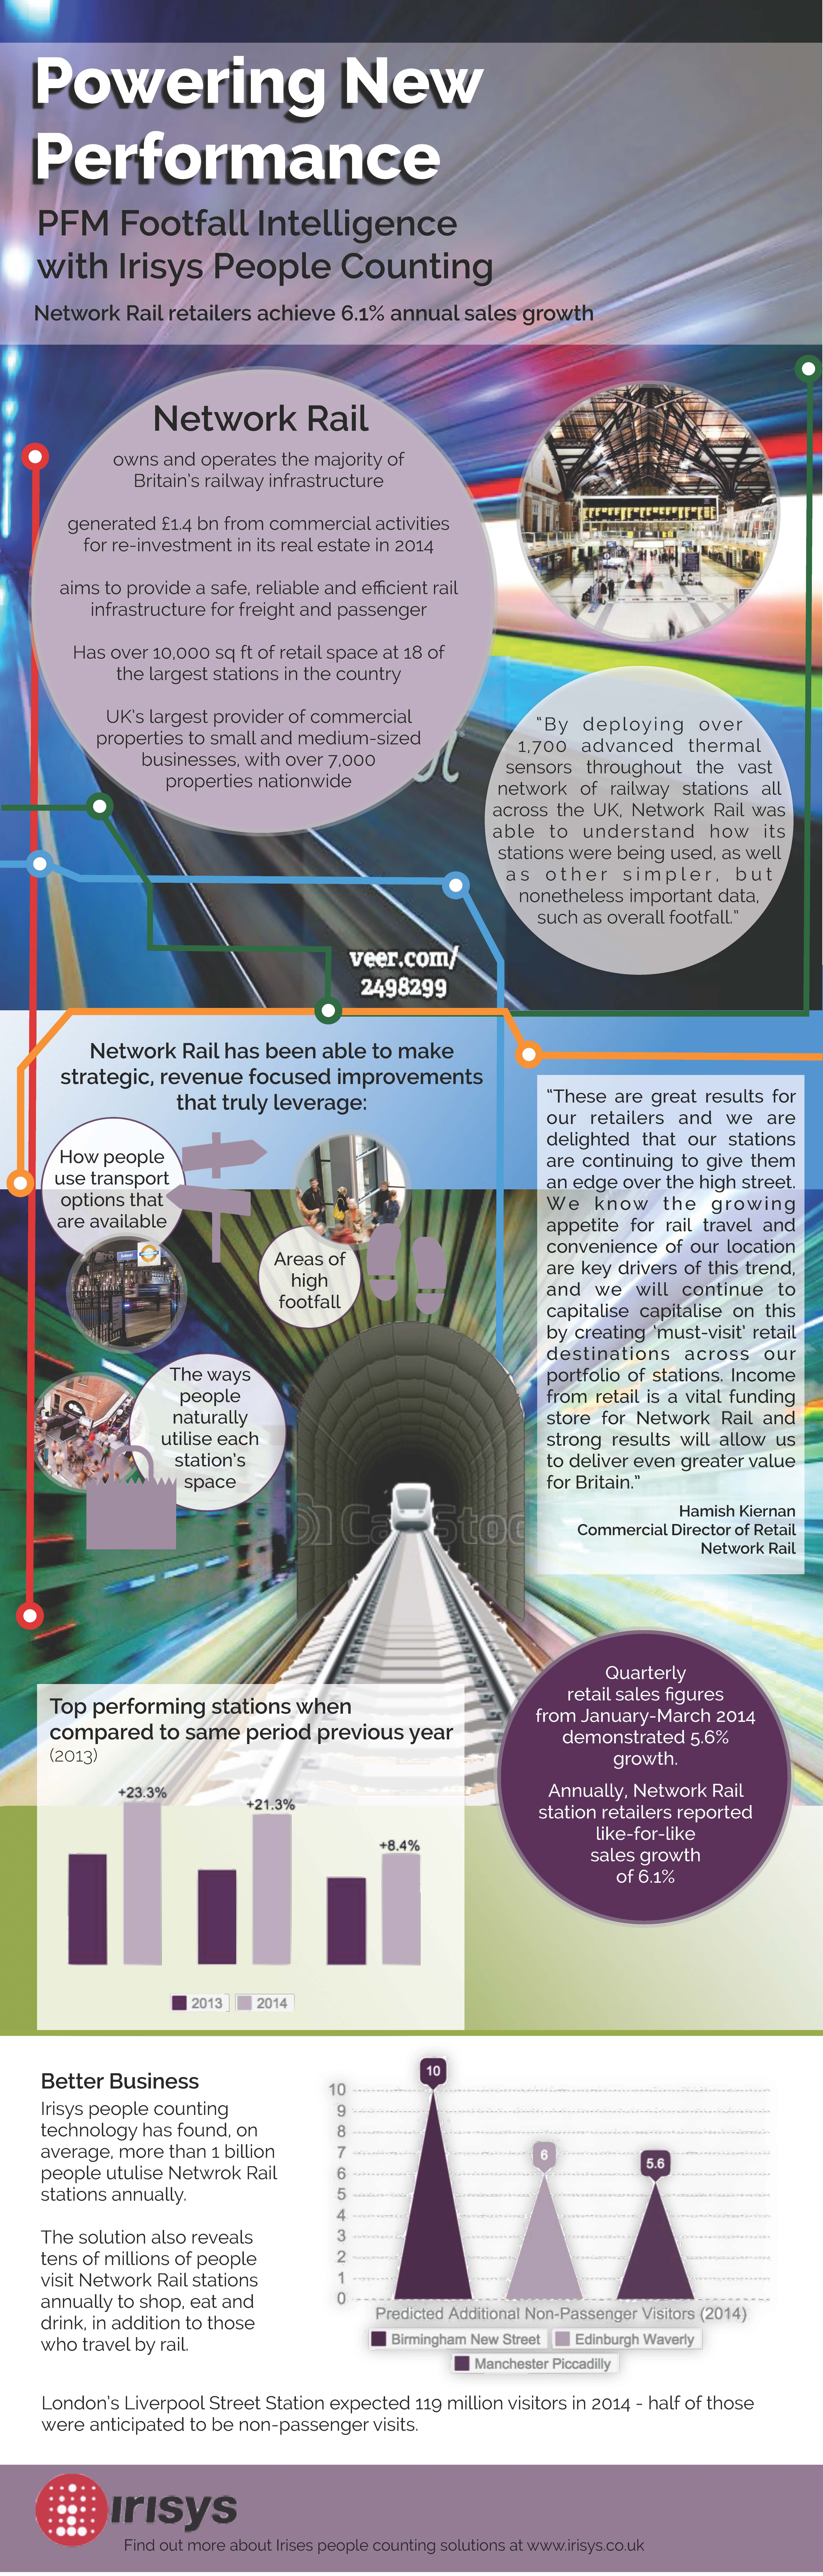 Network_Rail_Infographic_FINAL_8.12.2015